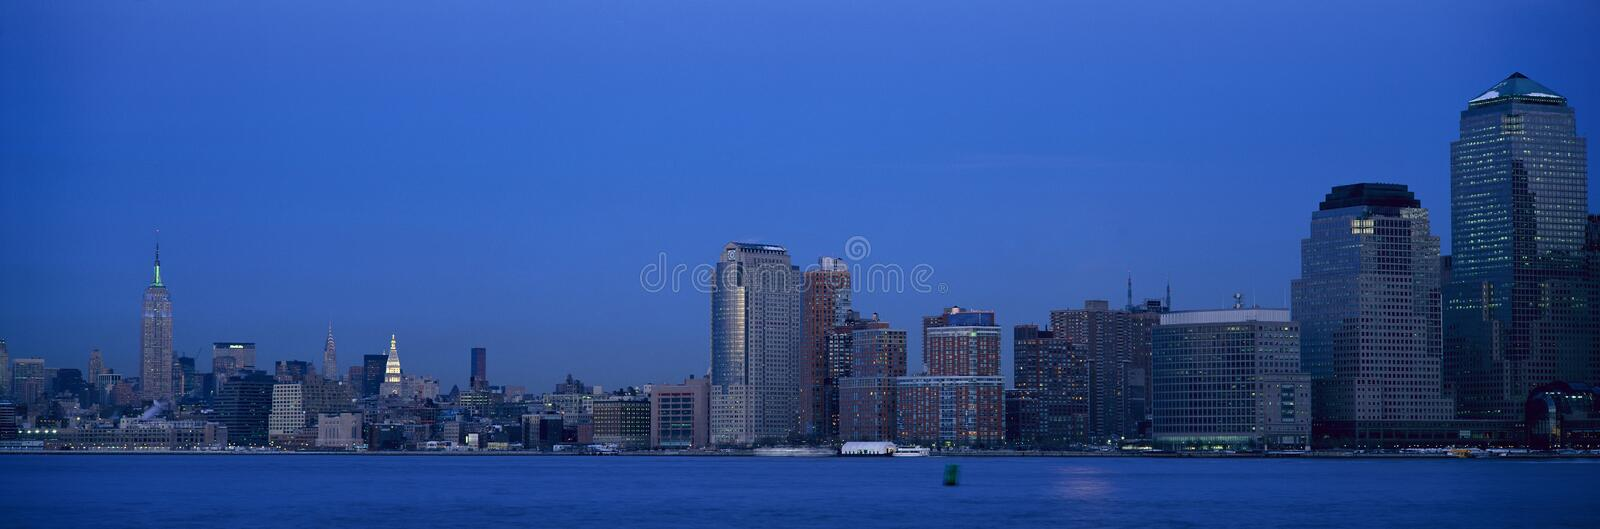 Panoramic night view of Empire State Building and Lower Manhattan skyline, NY where World Trade Towers were located royalty free stock image